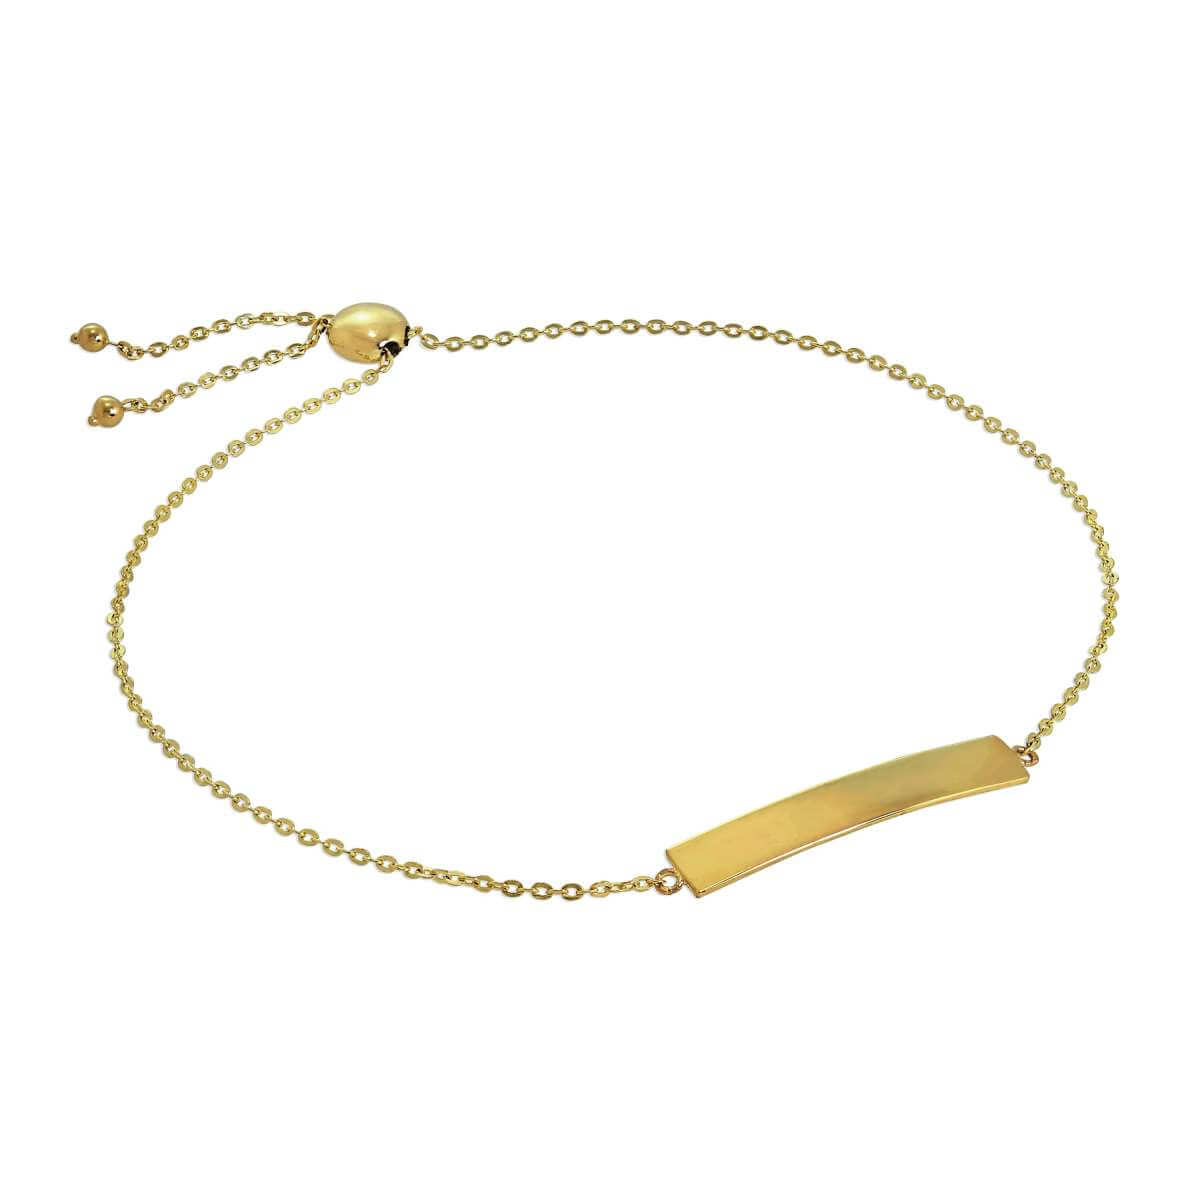 9ct Gold Engravable Adjustable ID Bracelet